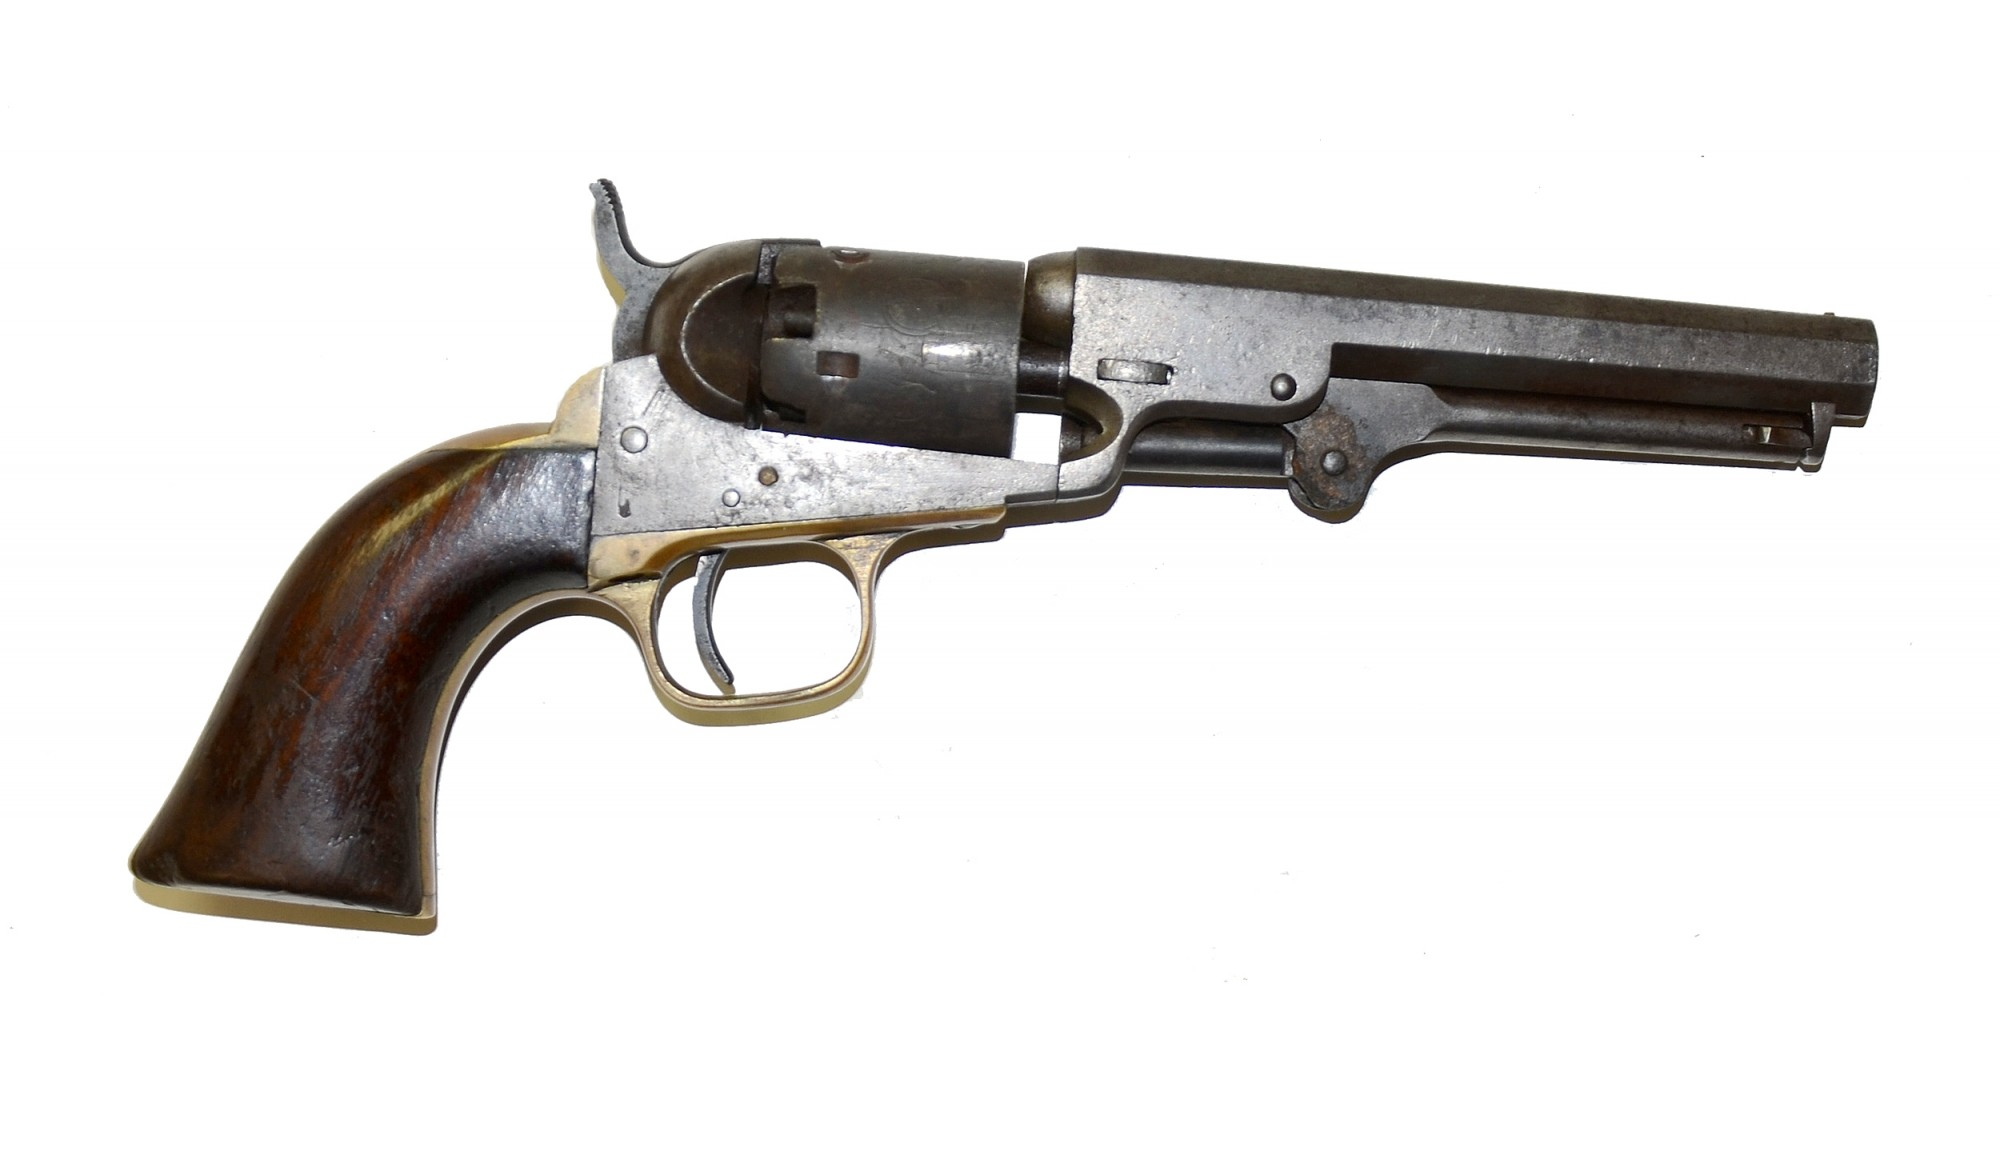 M1849 POCKET COLT REVOLVER ID'D TO PVT. ALONZO B. NELSON, 40TH NEW YORK INFANTRY - CAPTURED AT FREDERICKSBURG